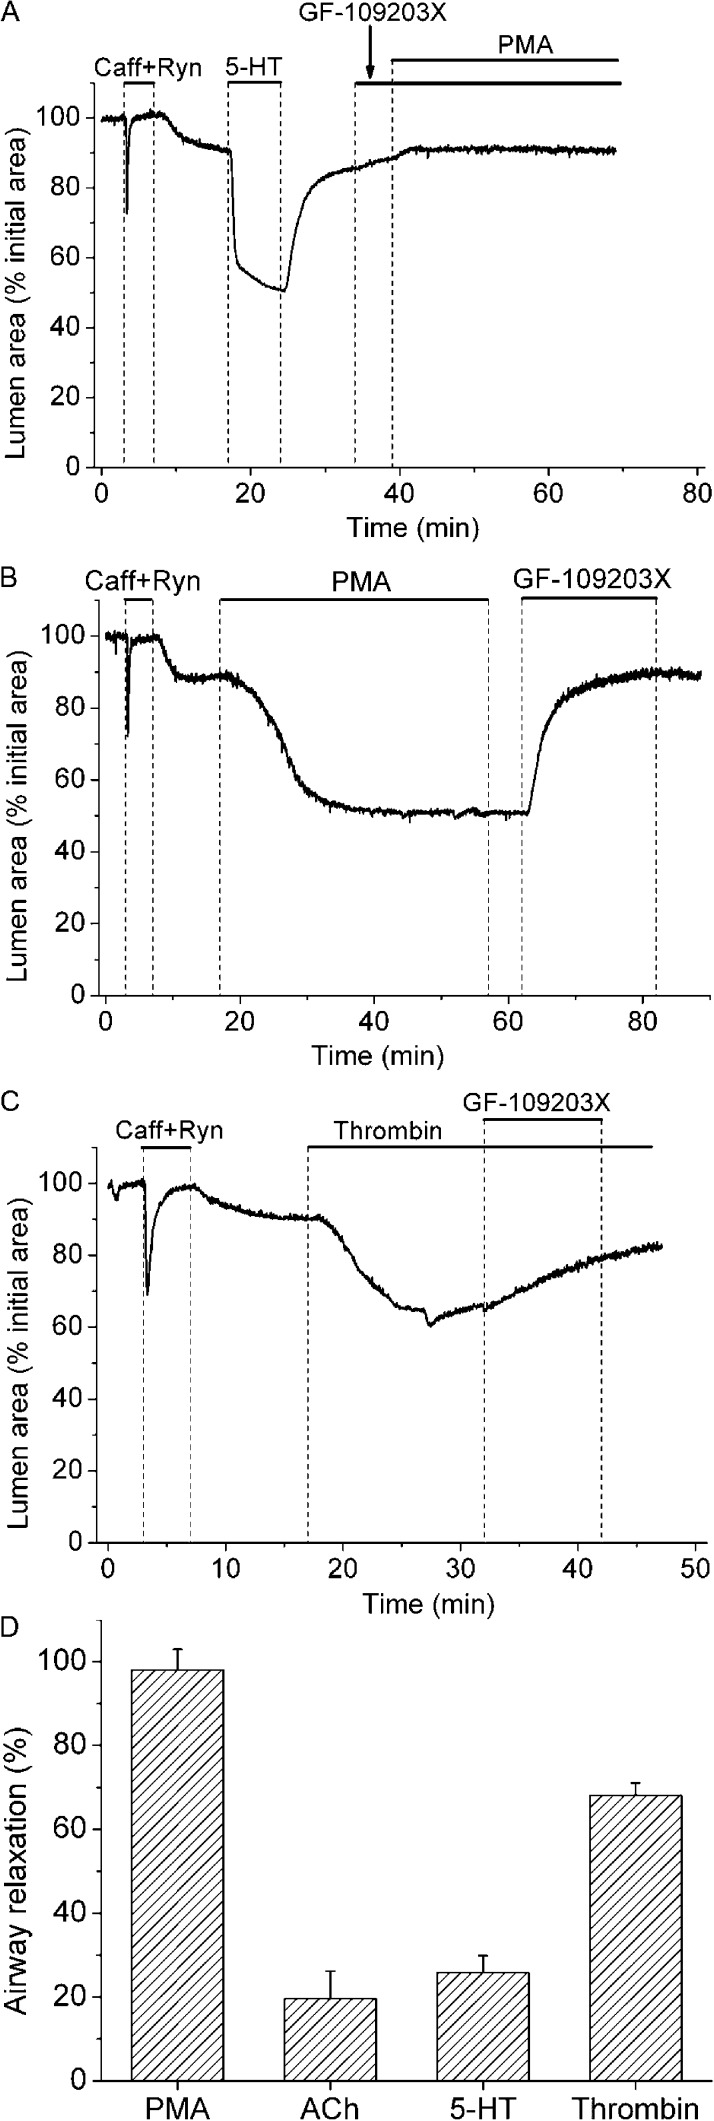 Effect of PKC inhibitor GF-109203X on Ca 2+ sensitization induced by PMA or contractile agonists. Lung slices were first exposed to 20 mM caffeine plus 25 µM ryanodine (upper bars) to induce Ca 2+ permeabilization. (A) Representative experiment showing the effect of airway exposure to 1 µM GF-109203X before and during stimulation with 10 µM PMA. Contractile response of the airways after Ca 2+ permeabilization was accessed with 0.5 µM 5-HT before their exposure to GF-109203X and PMA. This experiment is representative of six lung slices from three mice. (B and C) Airway contraction induced by PMA or 0.1 U/ml thrombin and the subsequent relaxation induced by GF-109203X. (D) Summary of the effect of GF-109203X on airway contraction in Ca 2+ -permeabilized airways precontracted with 10 µM PMA, 0.25 µM ACh, 0.5 µM 5-HT, and 0.1 U/ml thrombin. Airway relaxation (mean ± SEM; n = 5 lung slices from 3 mice) was obtained from experiments similar to that shown in B and C using the appropriated contractile agonist or PMA.